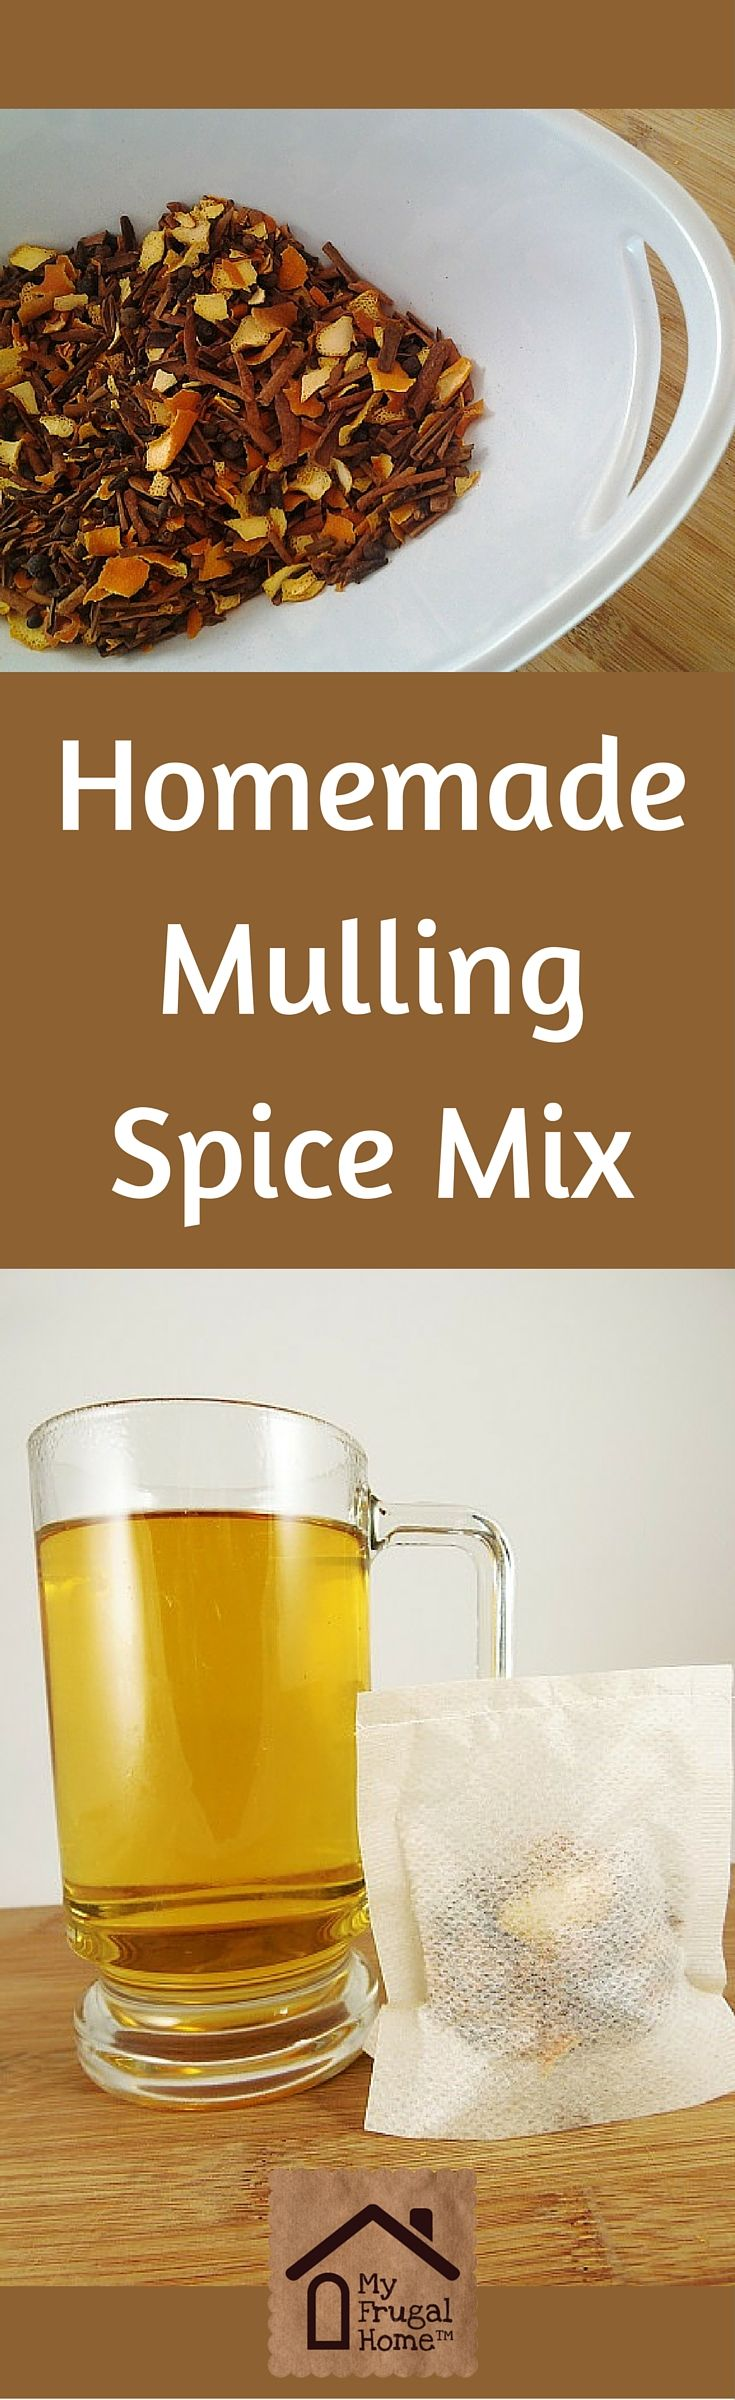 Homemade Mulling Spice Mix Recipe - packaged in single-use bags. Perfect for gifting.